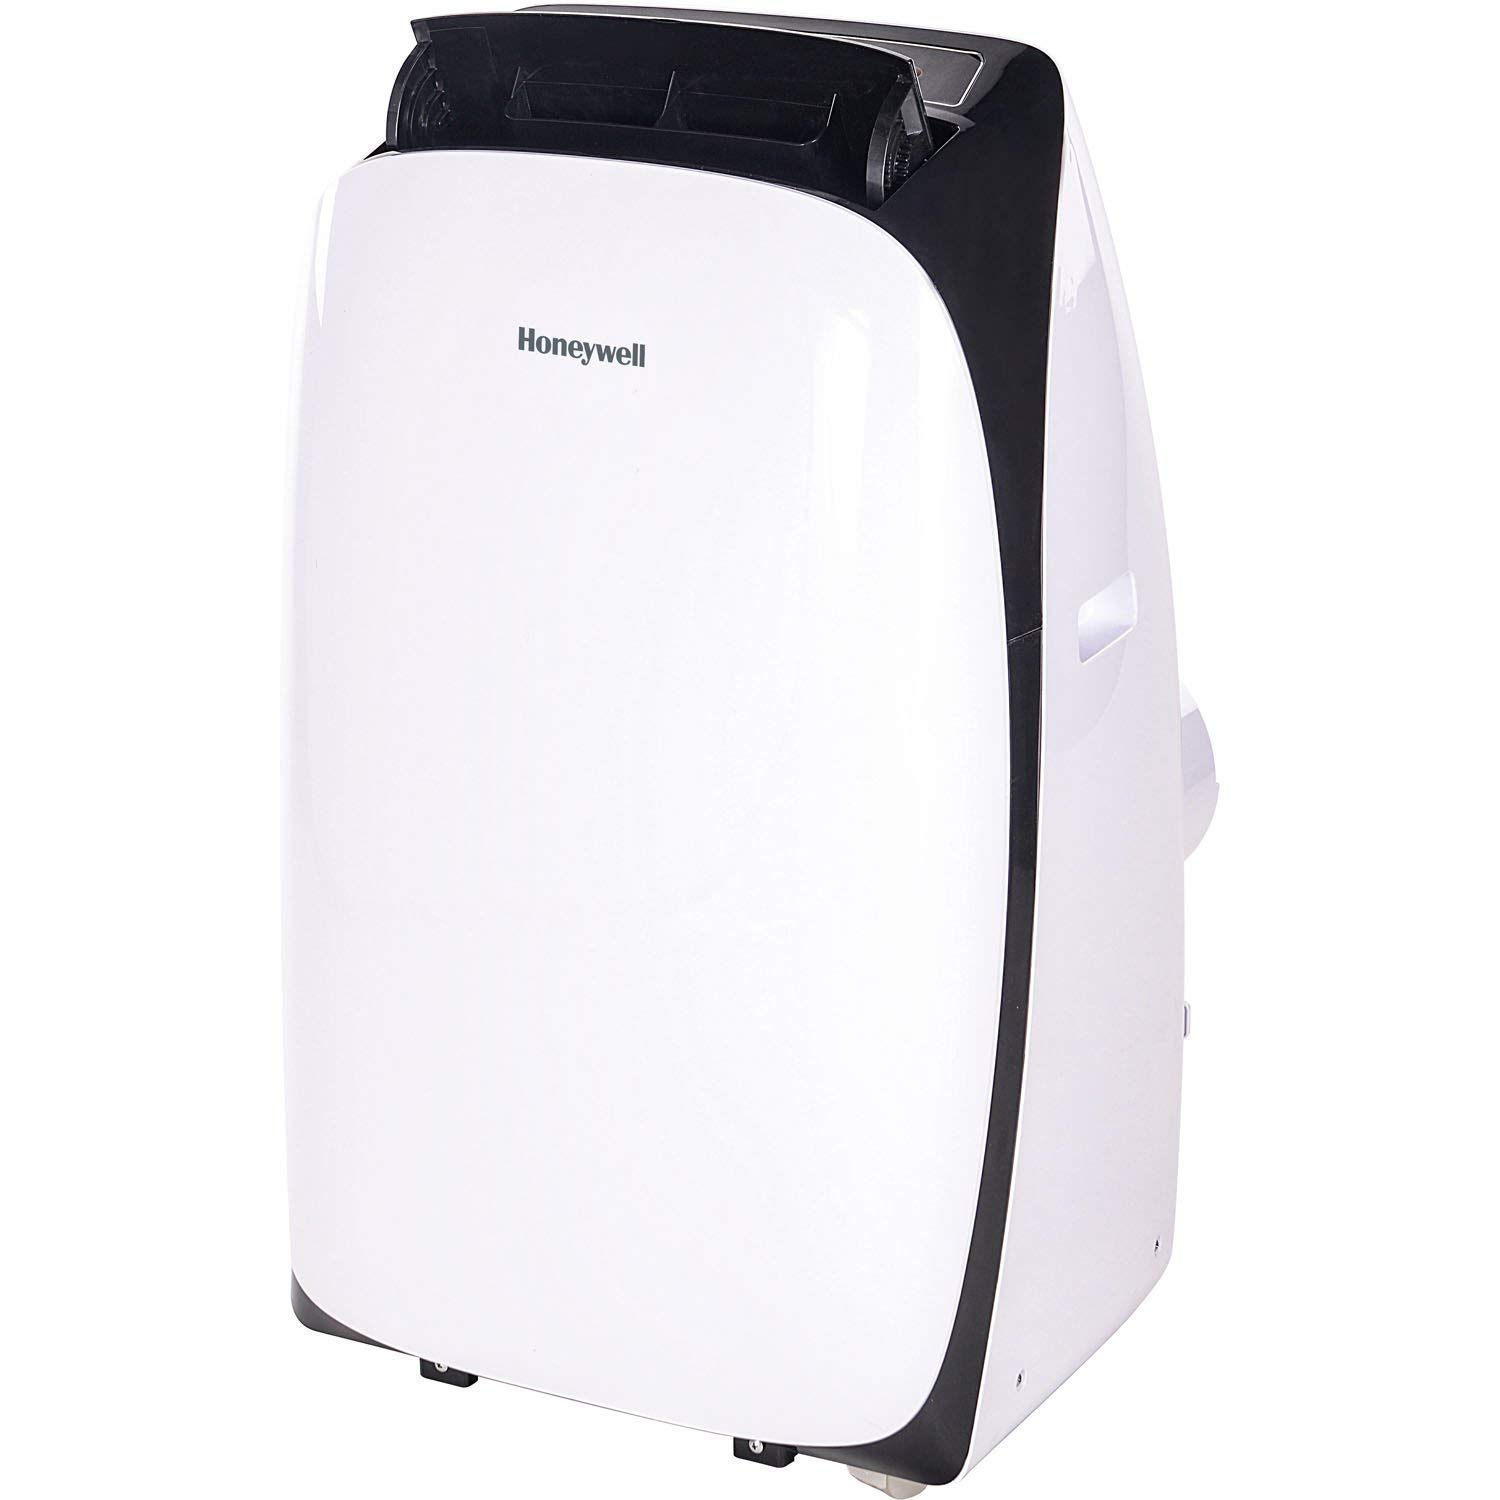 Honeywell 10000 Btu Portable Air Conditioner for Rooms Up to 350-450 Sq. Ft with Remote Control by Honeywell